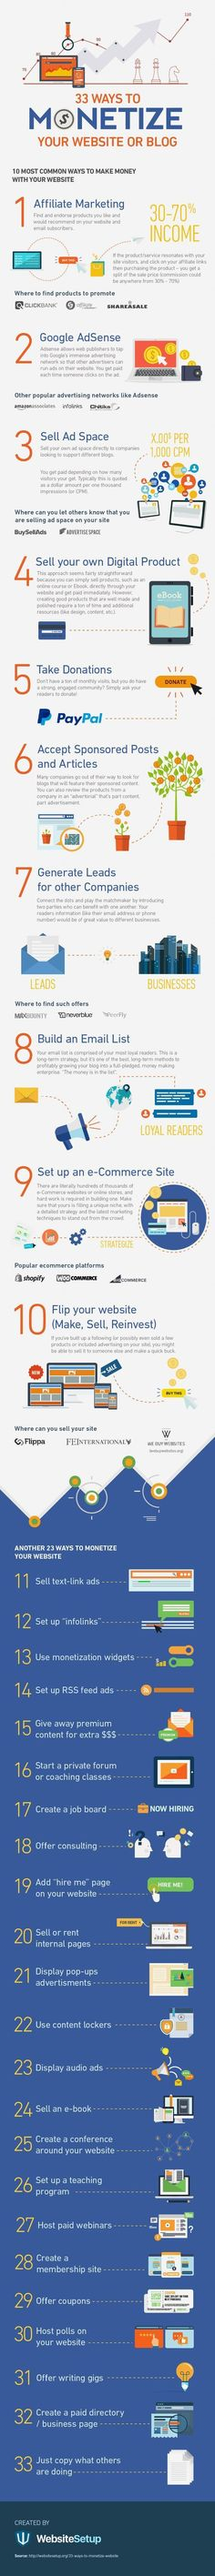 33 Ways to Make Money From Your Website or Blog